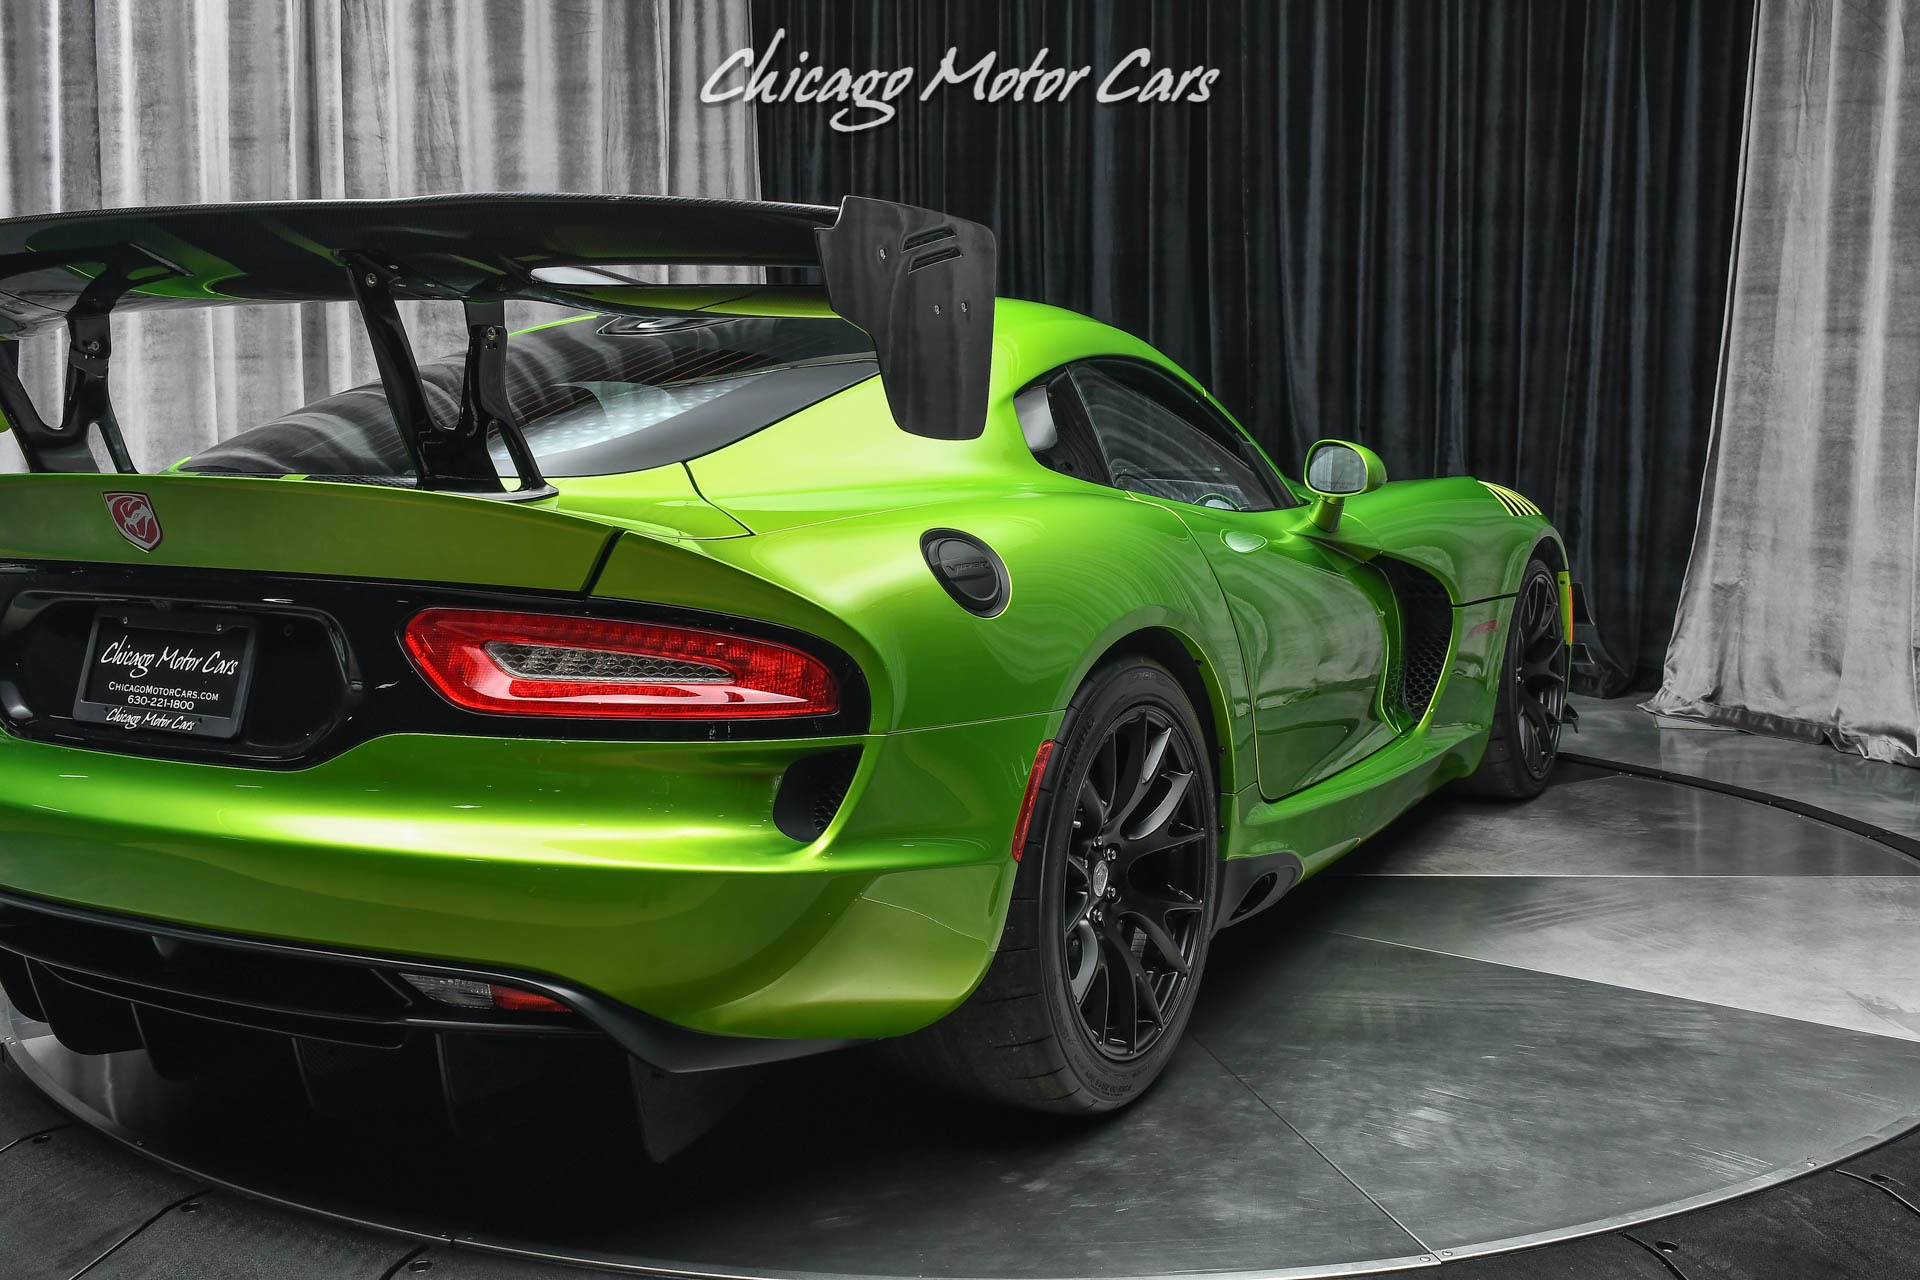 Used-2017-Dodge-Viper-ACR-Extreme-131-Produced-Extremely-Rare-Ceased-Production